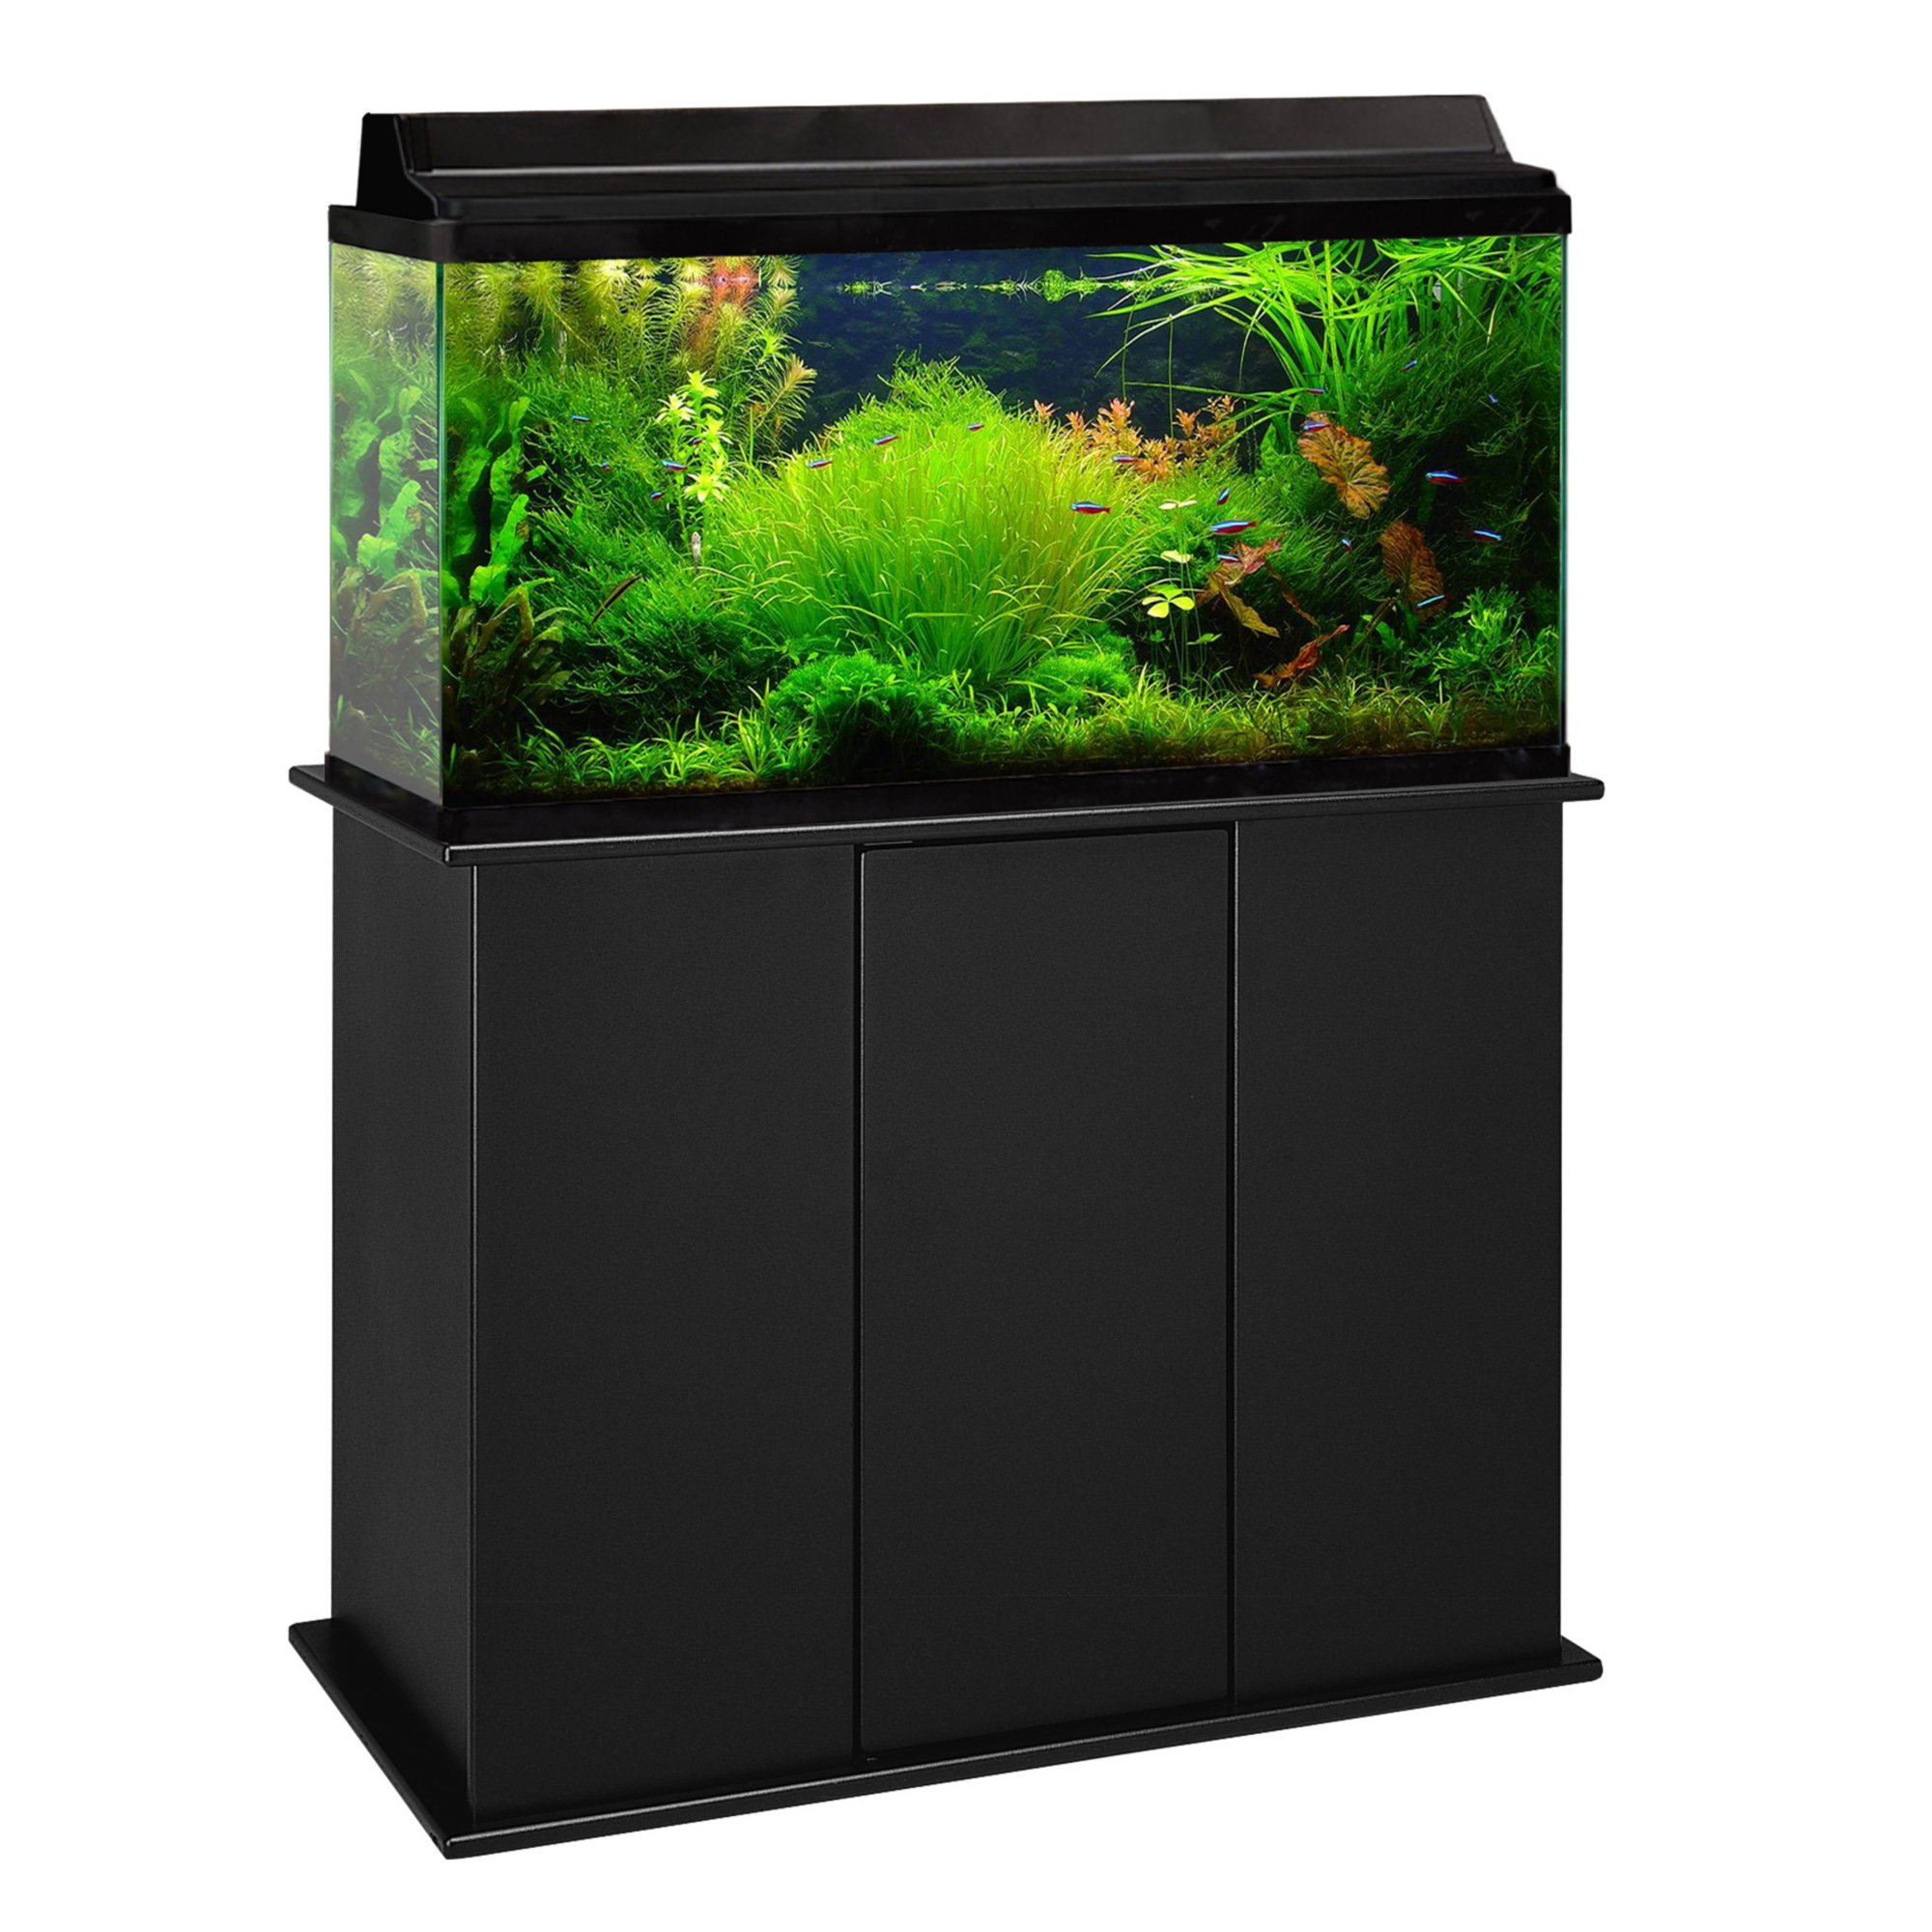 Aquarium stand 50 gallon box 50 gallon showpiece for 65 gallon fish tank